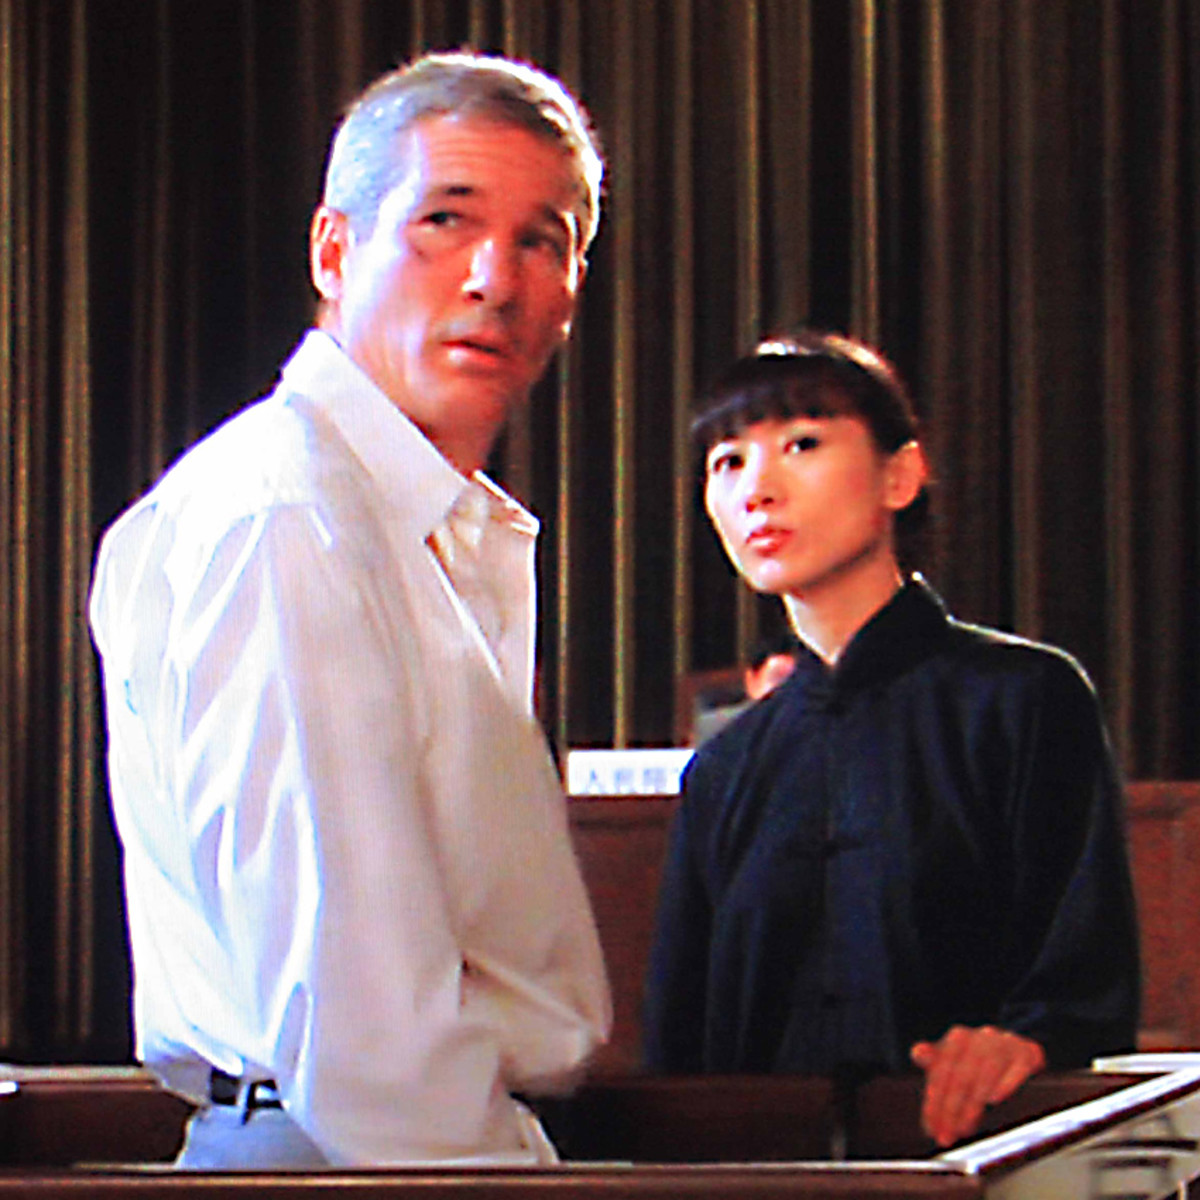 The two central characters have their day in court at the end of the movie